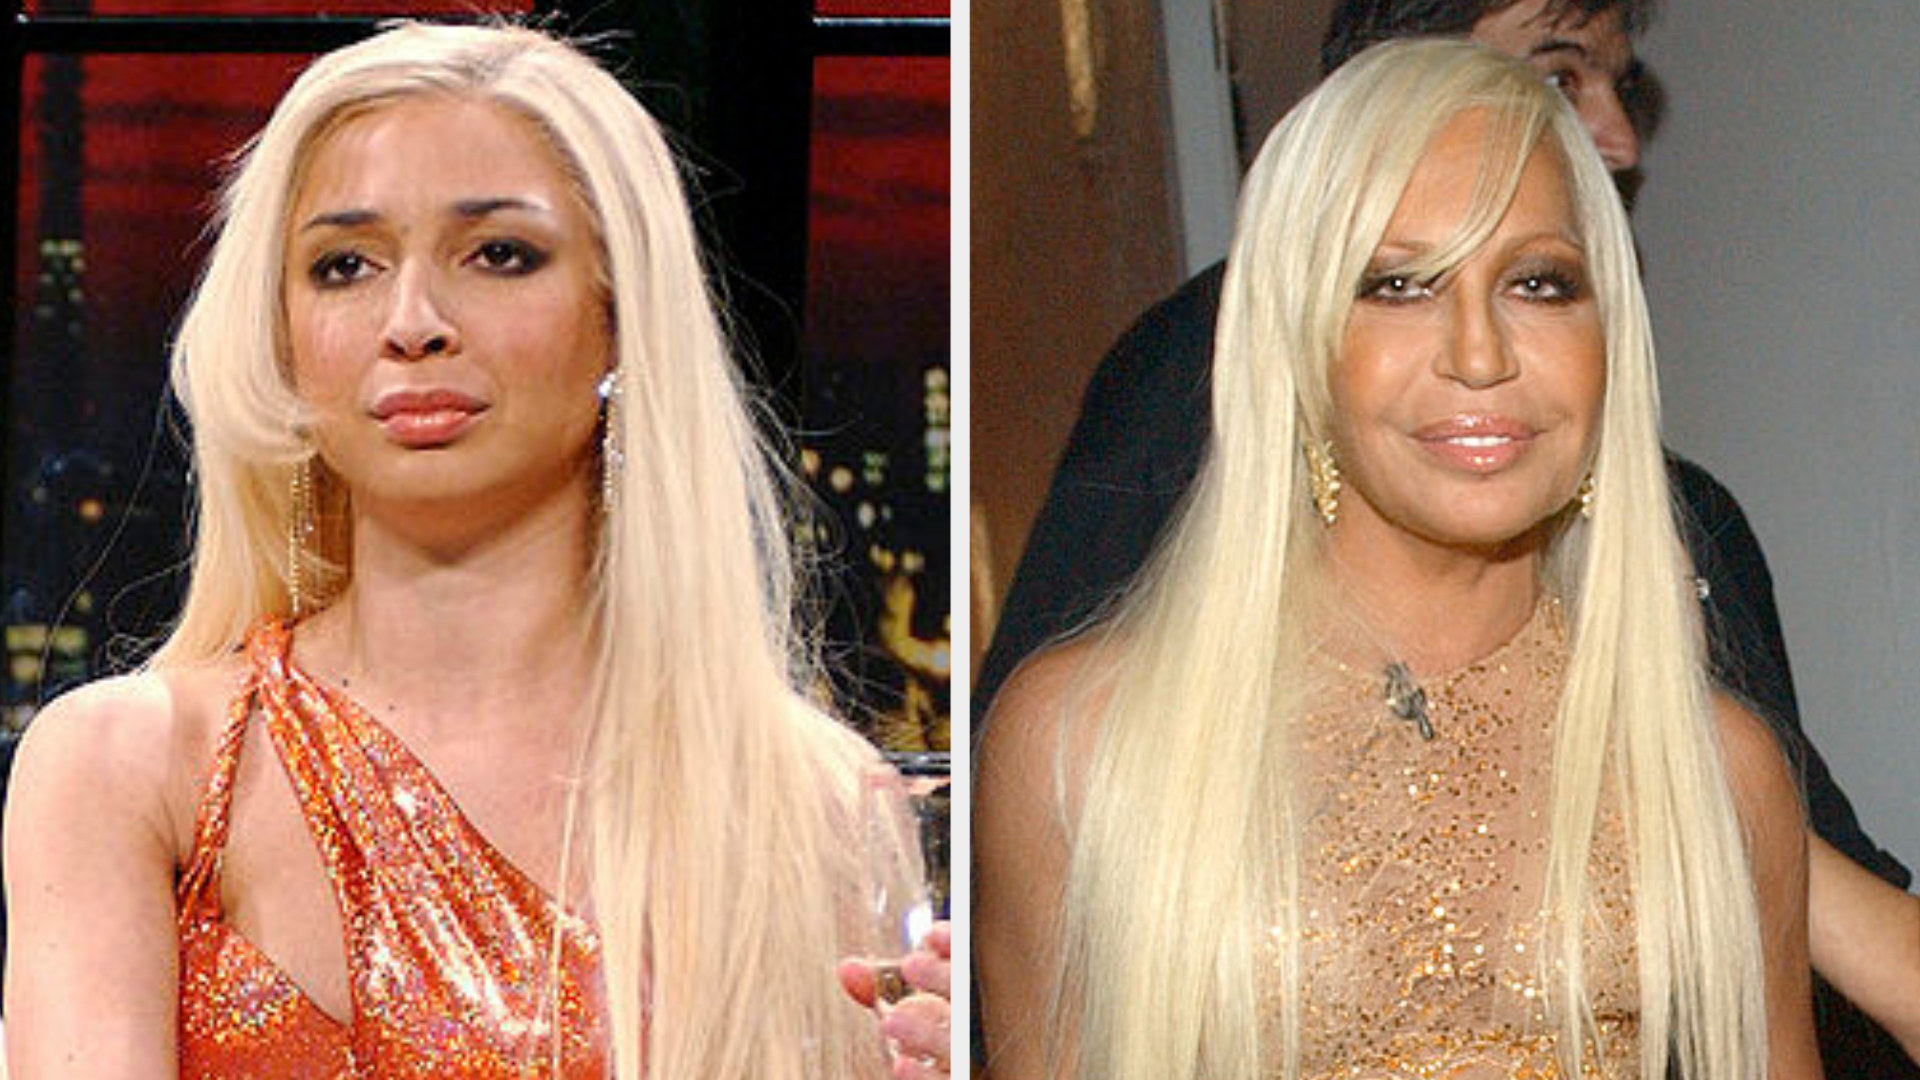 Maya Rudolph in an orange dress with a long blonde wig side by side with Donatella Versace in a similar dress with the same haircut